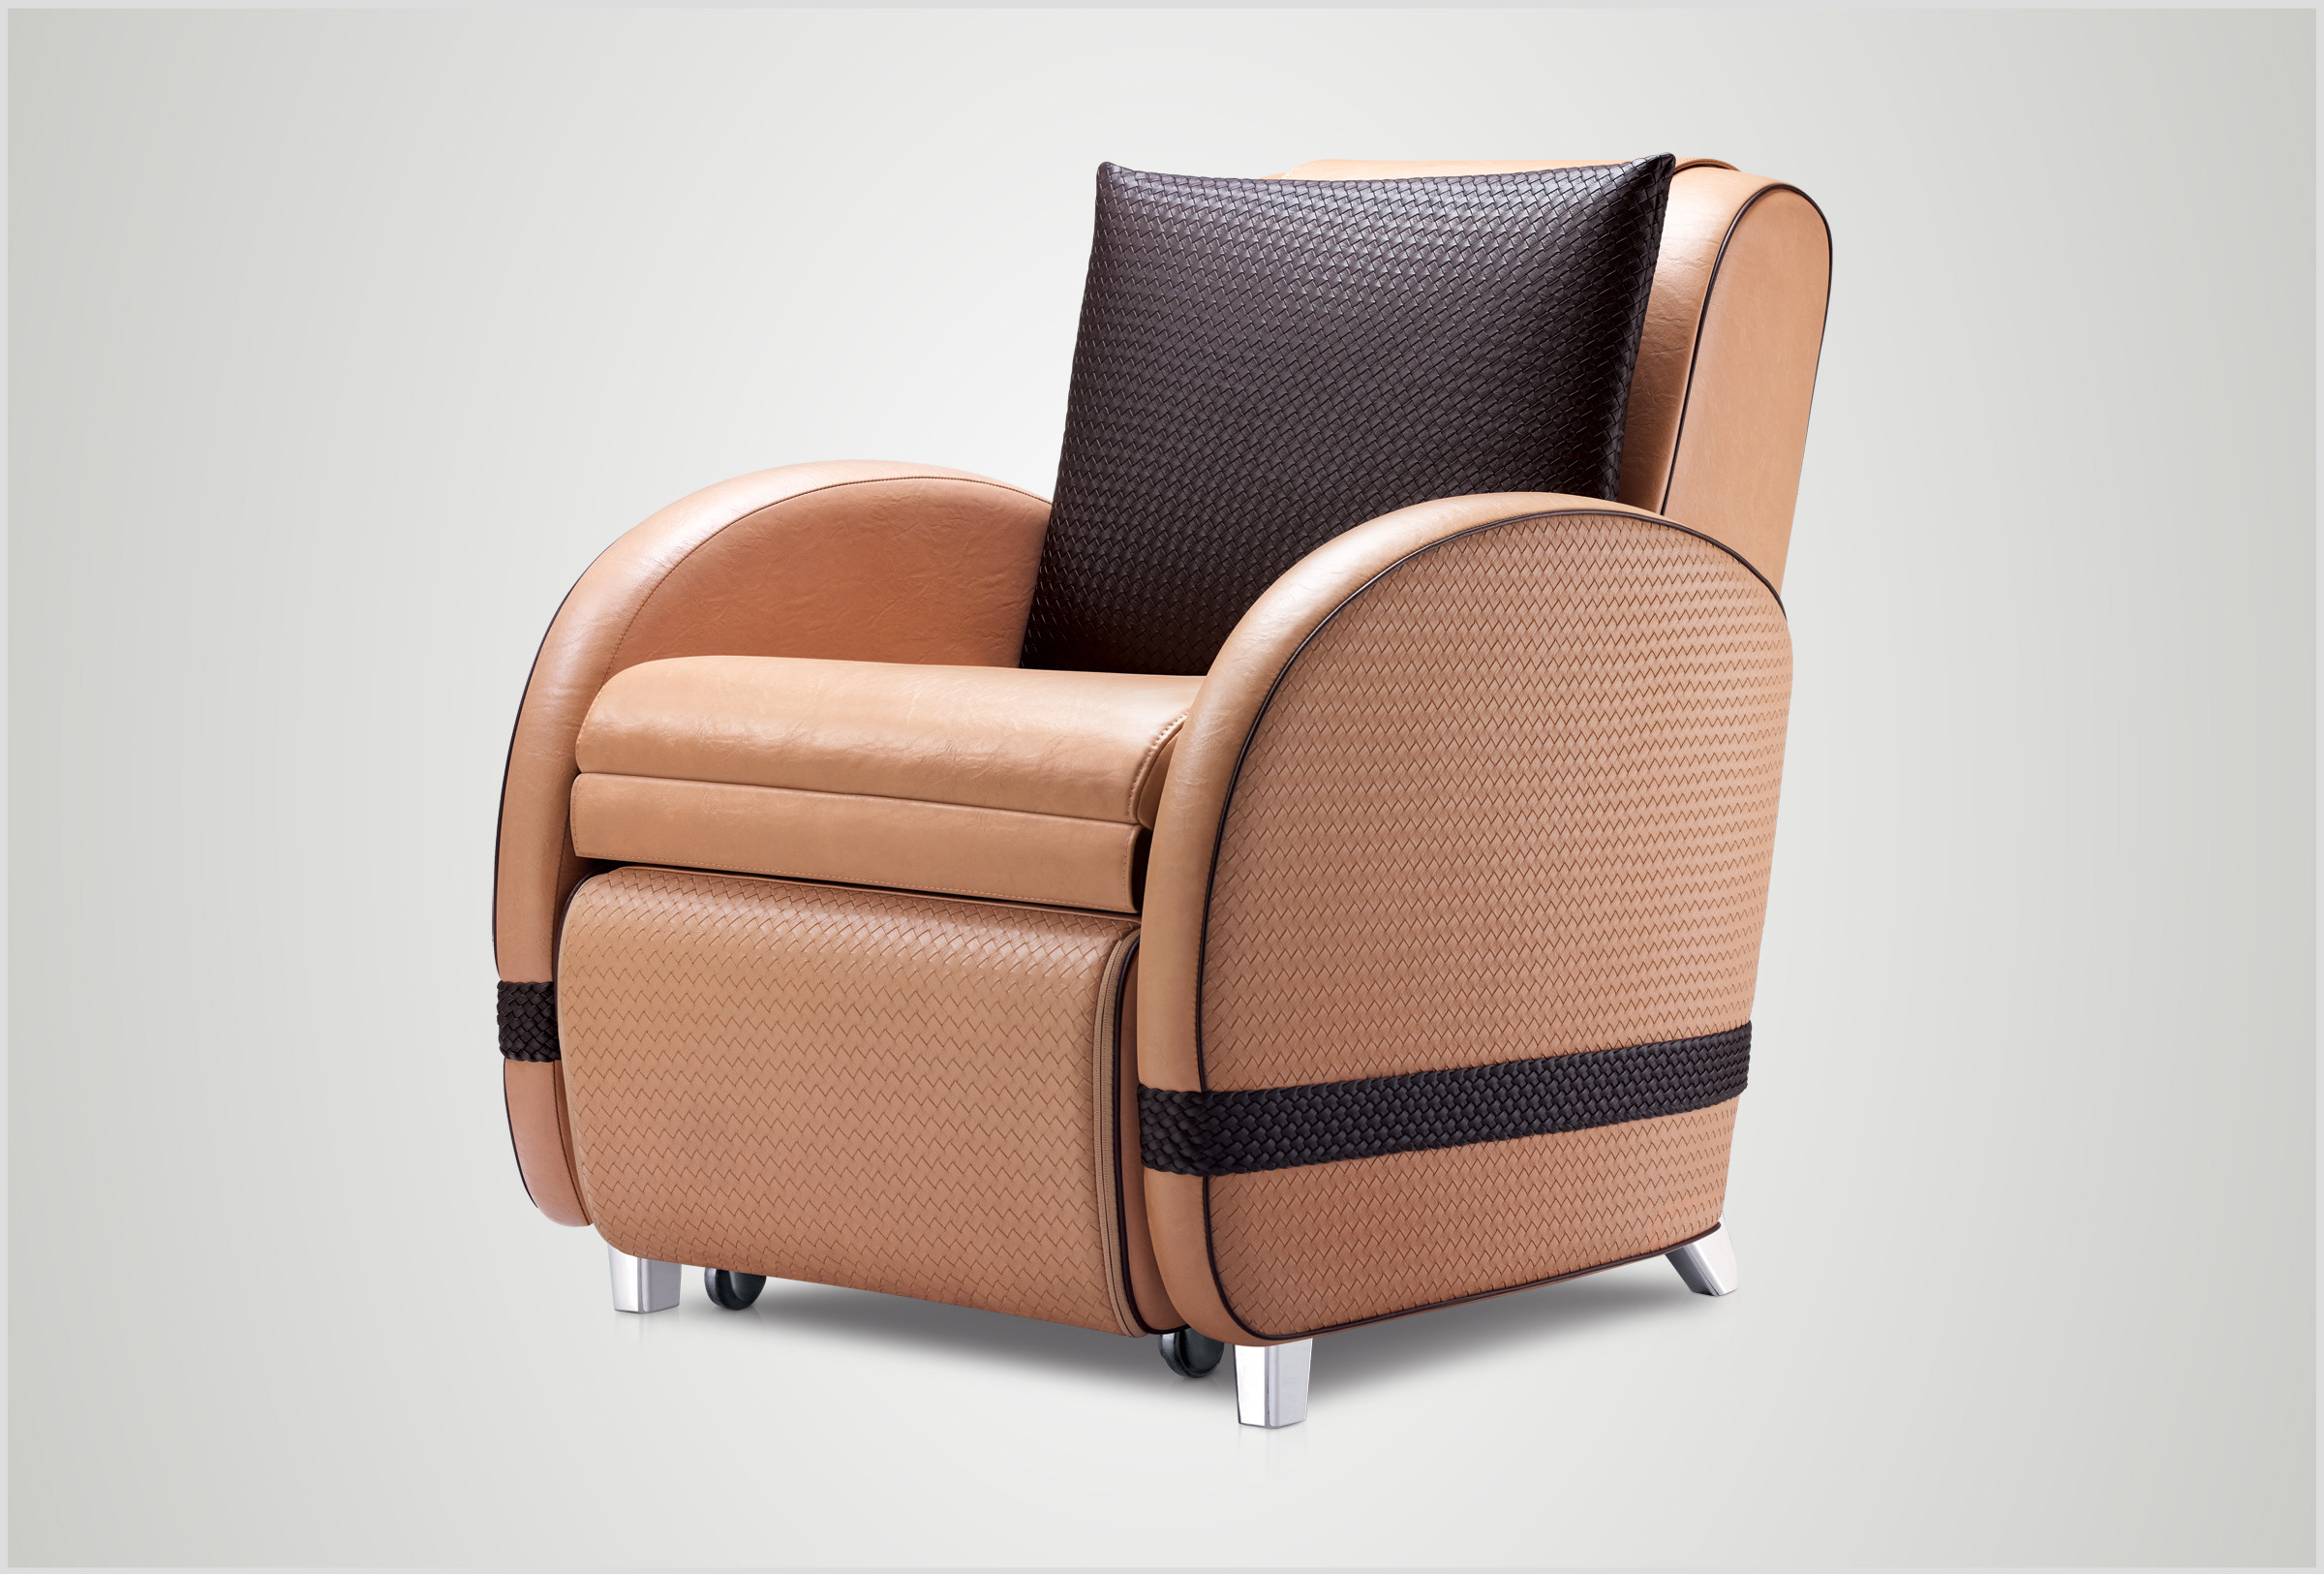 views my more osim unano extra massage malaysia chair